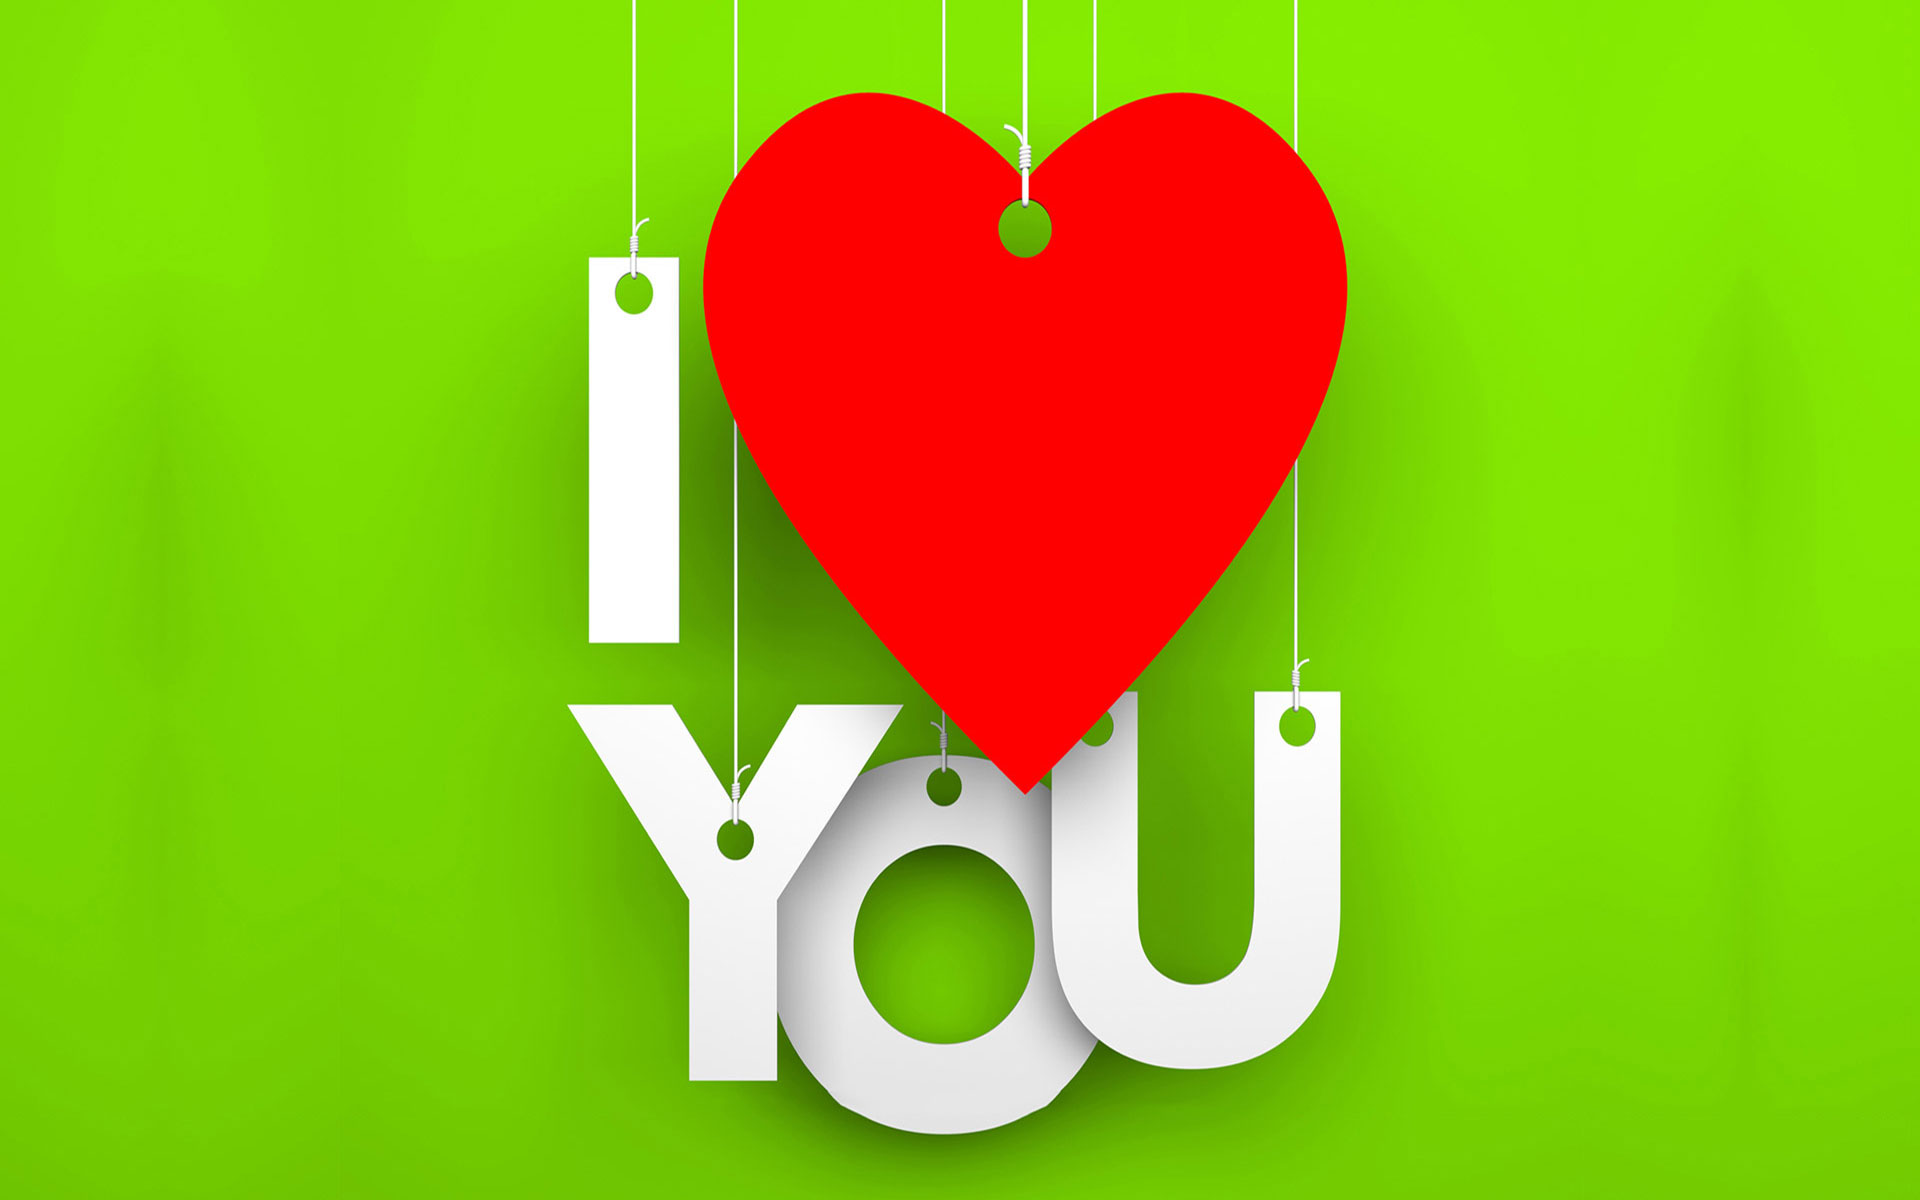 L Love You Hd Wallpaper : 25+ Free HD I Love You Wallpapers cute I Love You Images